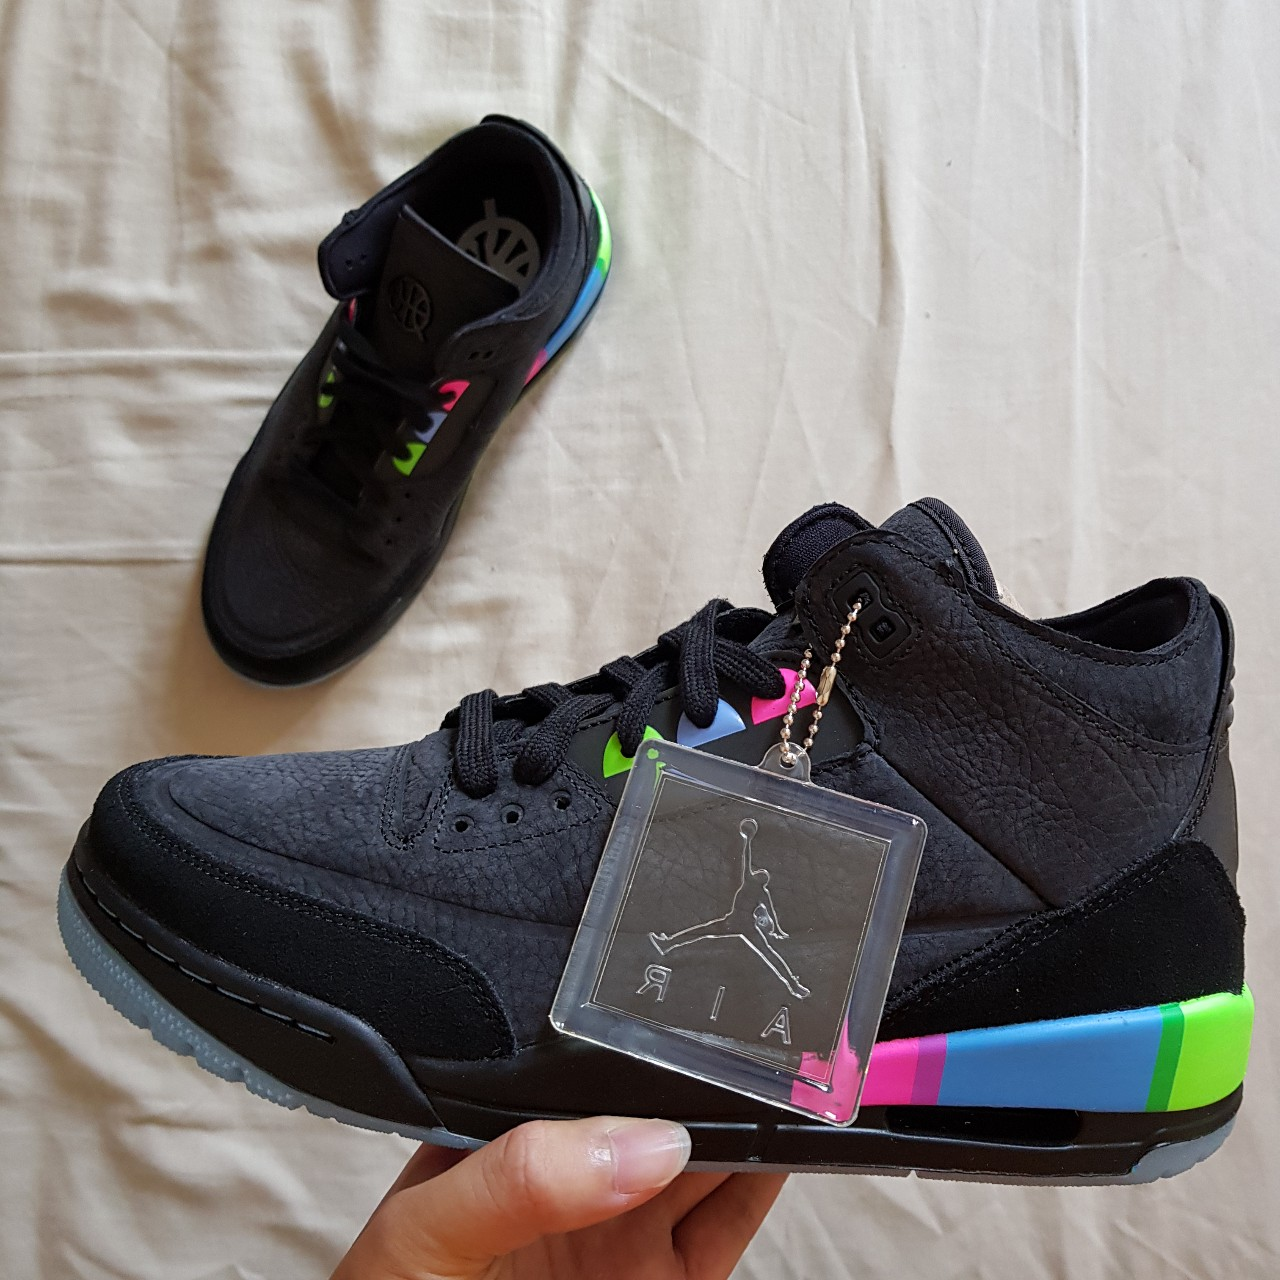 pretty nice d2a07 1901b AIR JORDAN 3 RETRO SE QUAI 54 SIZE UK8 and UK7... - Depop